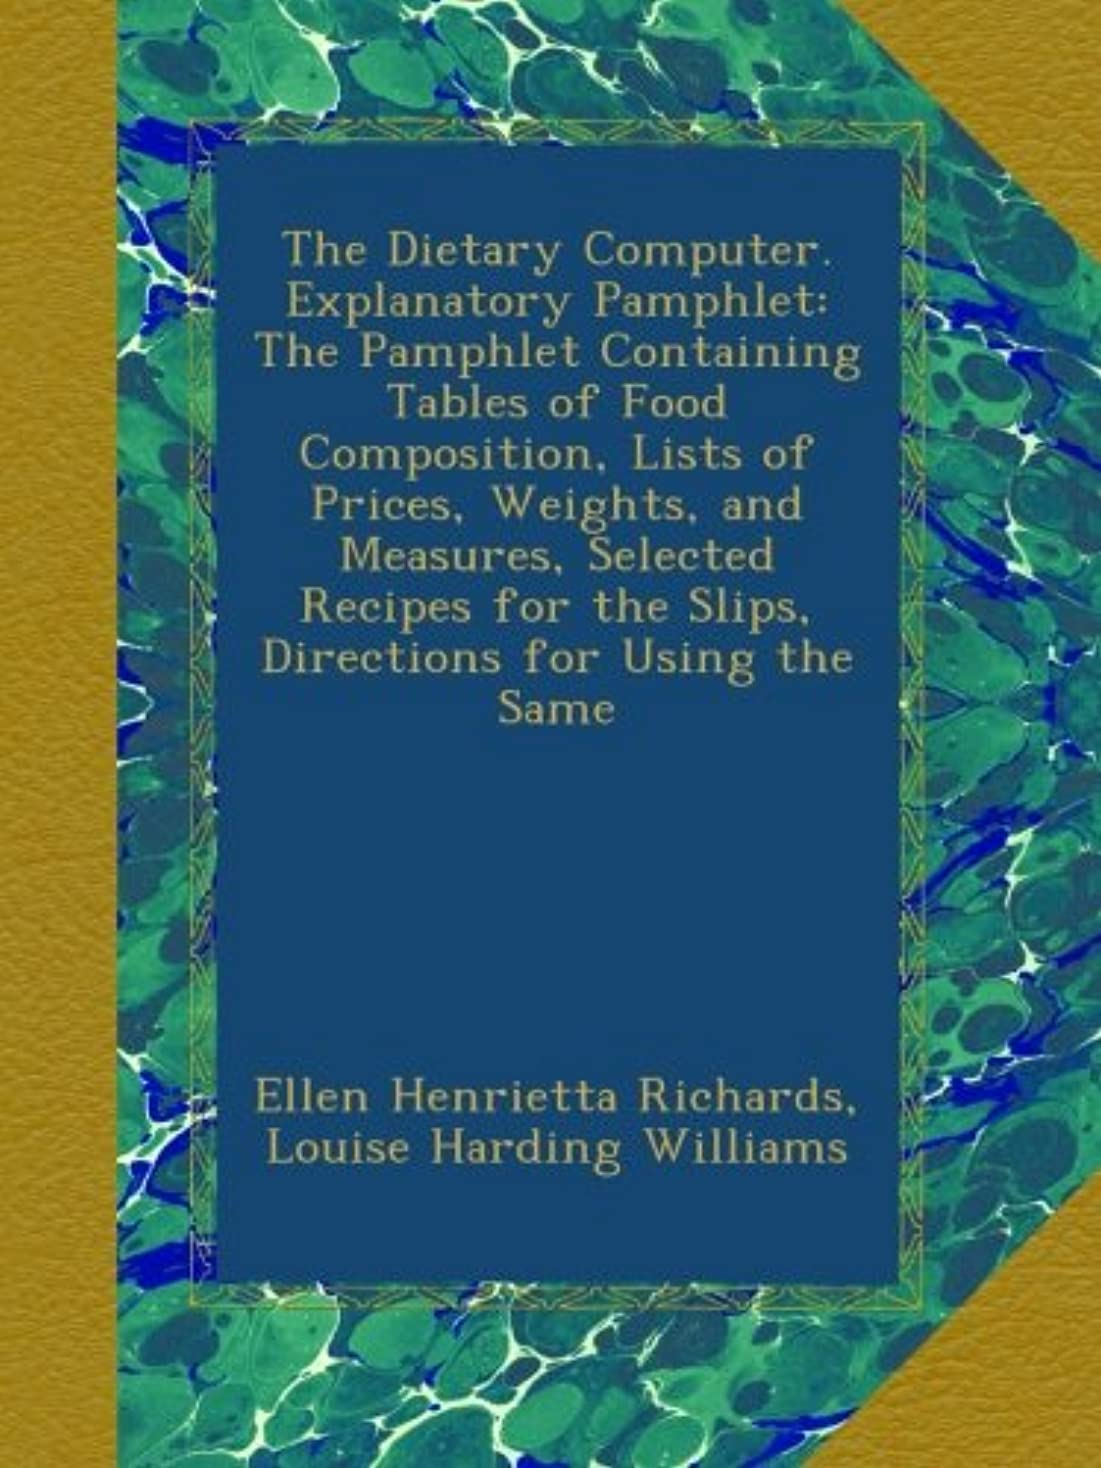 取るに足らない思われるホイッスルThe Dietary Computer. Explanatory Pamphlet: The Pamphlet Containing Tables of Food Composition, Lists of Prices, Weights, and Measures, Selected Recipes for the Slips, Directions for Using the Same